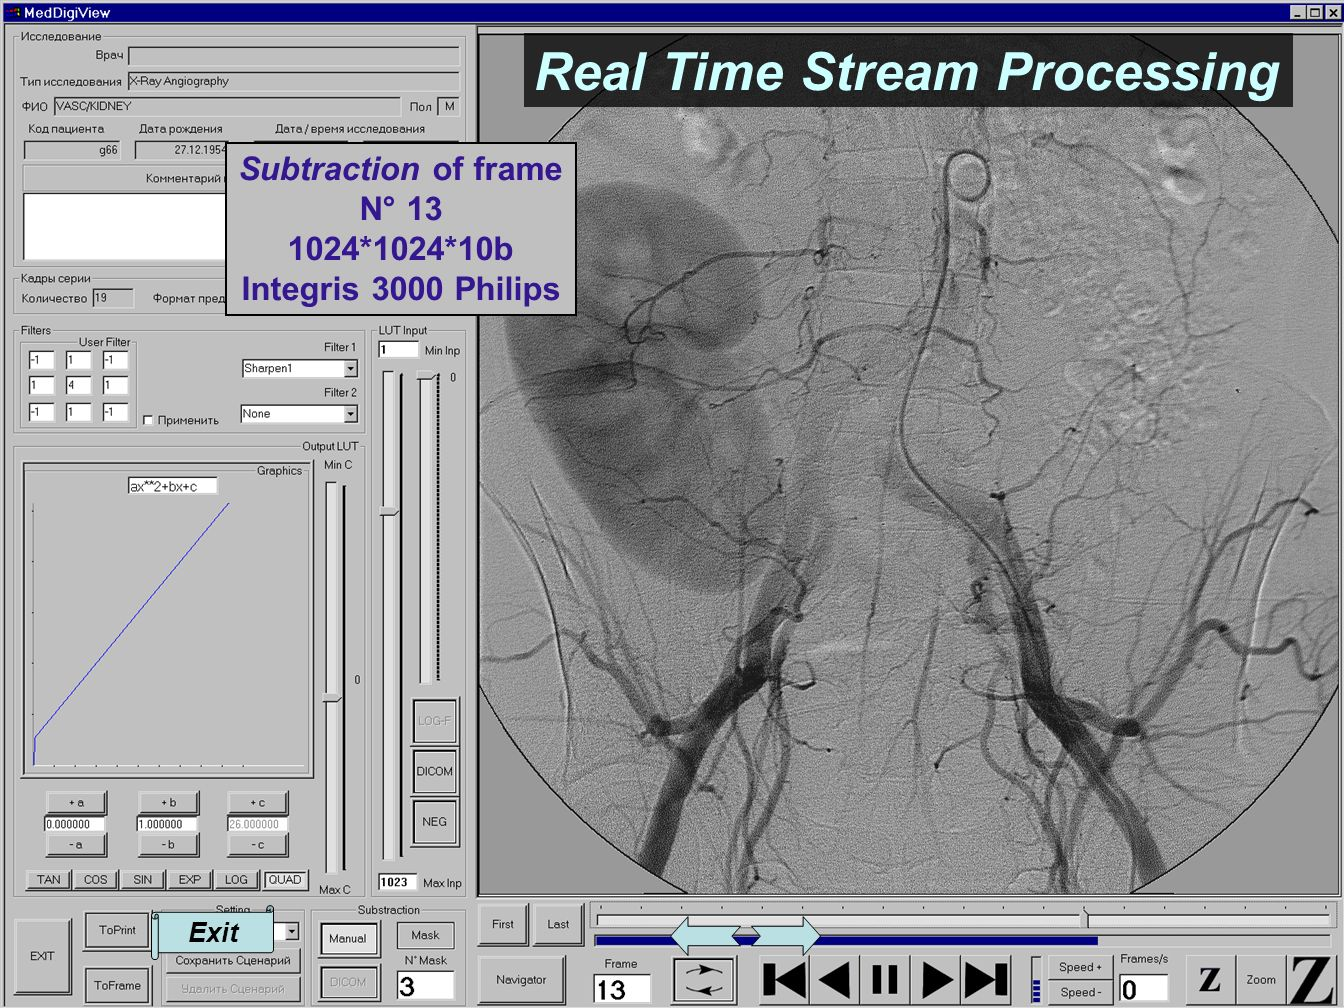 Exit Subtraction of frame N° 13 1024*1024*10b Integris 3000 Philips Real Time Stream Processing